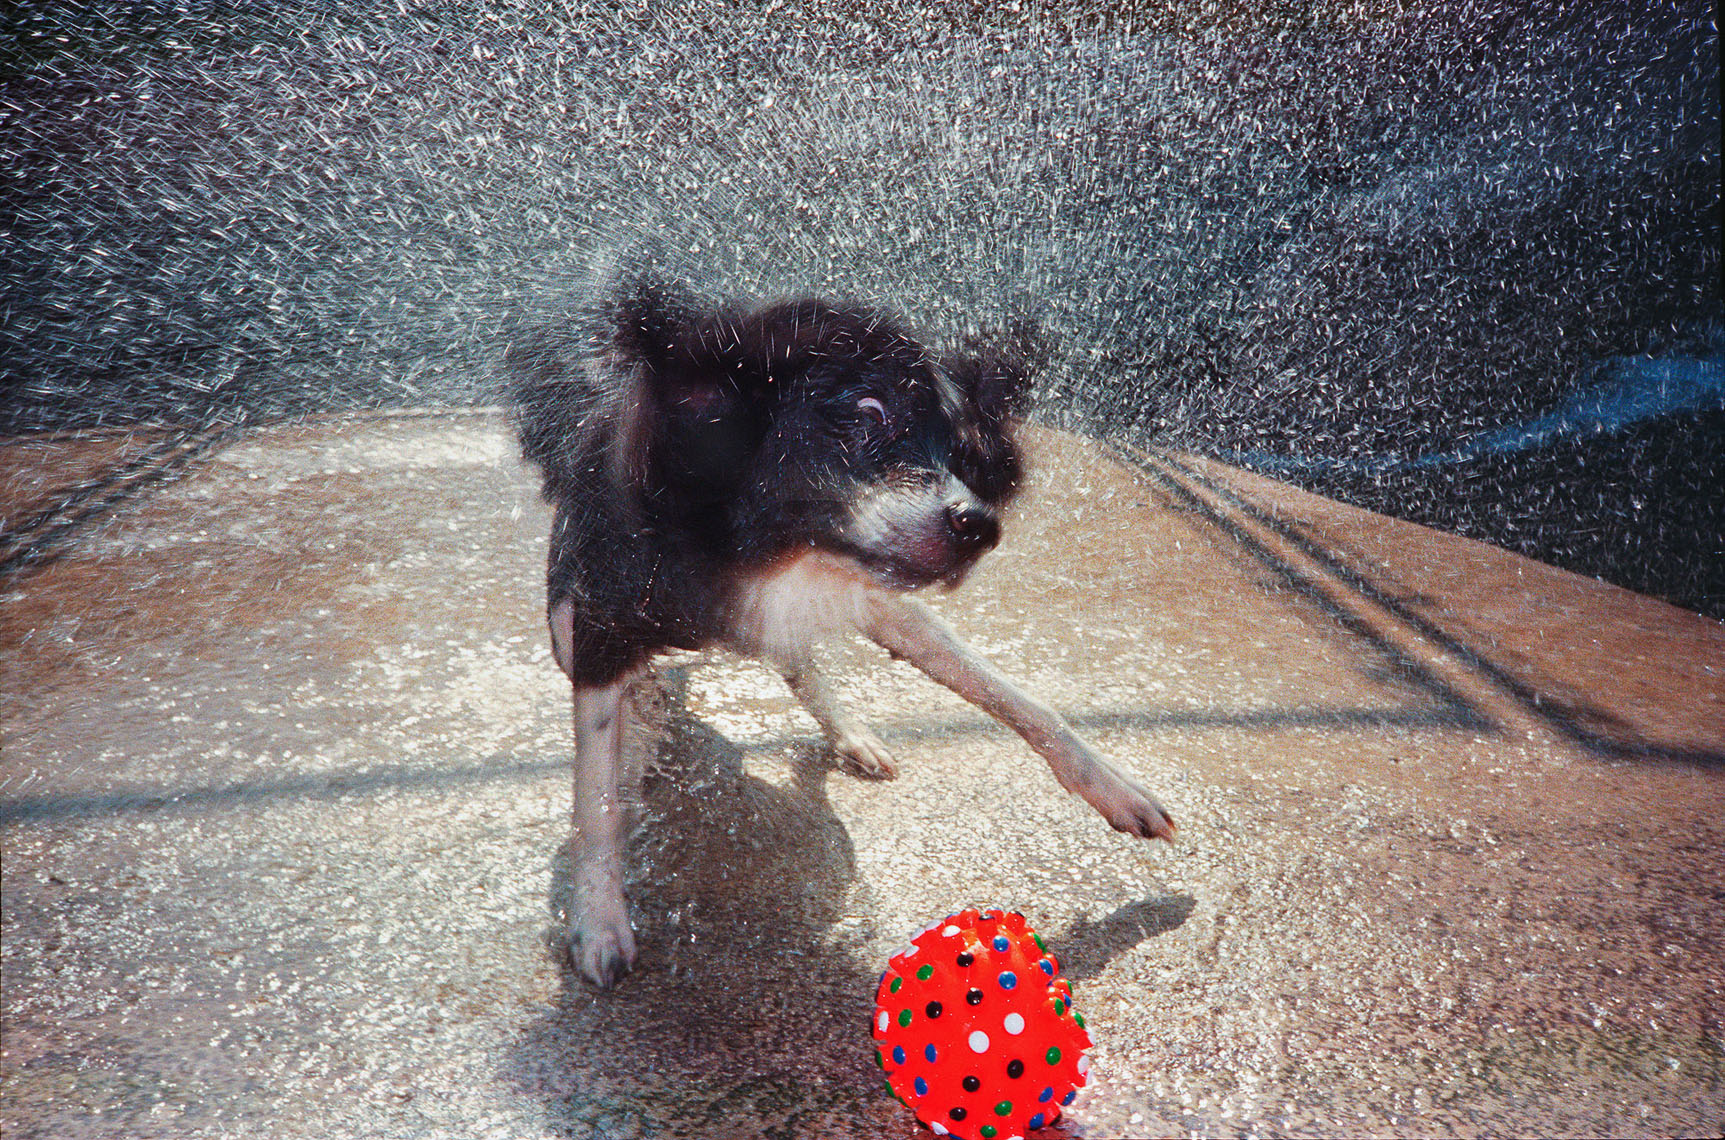 1163Wet dog shaking off, red ball